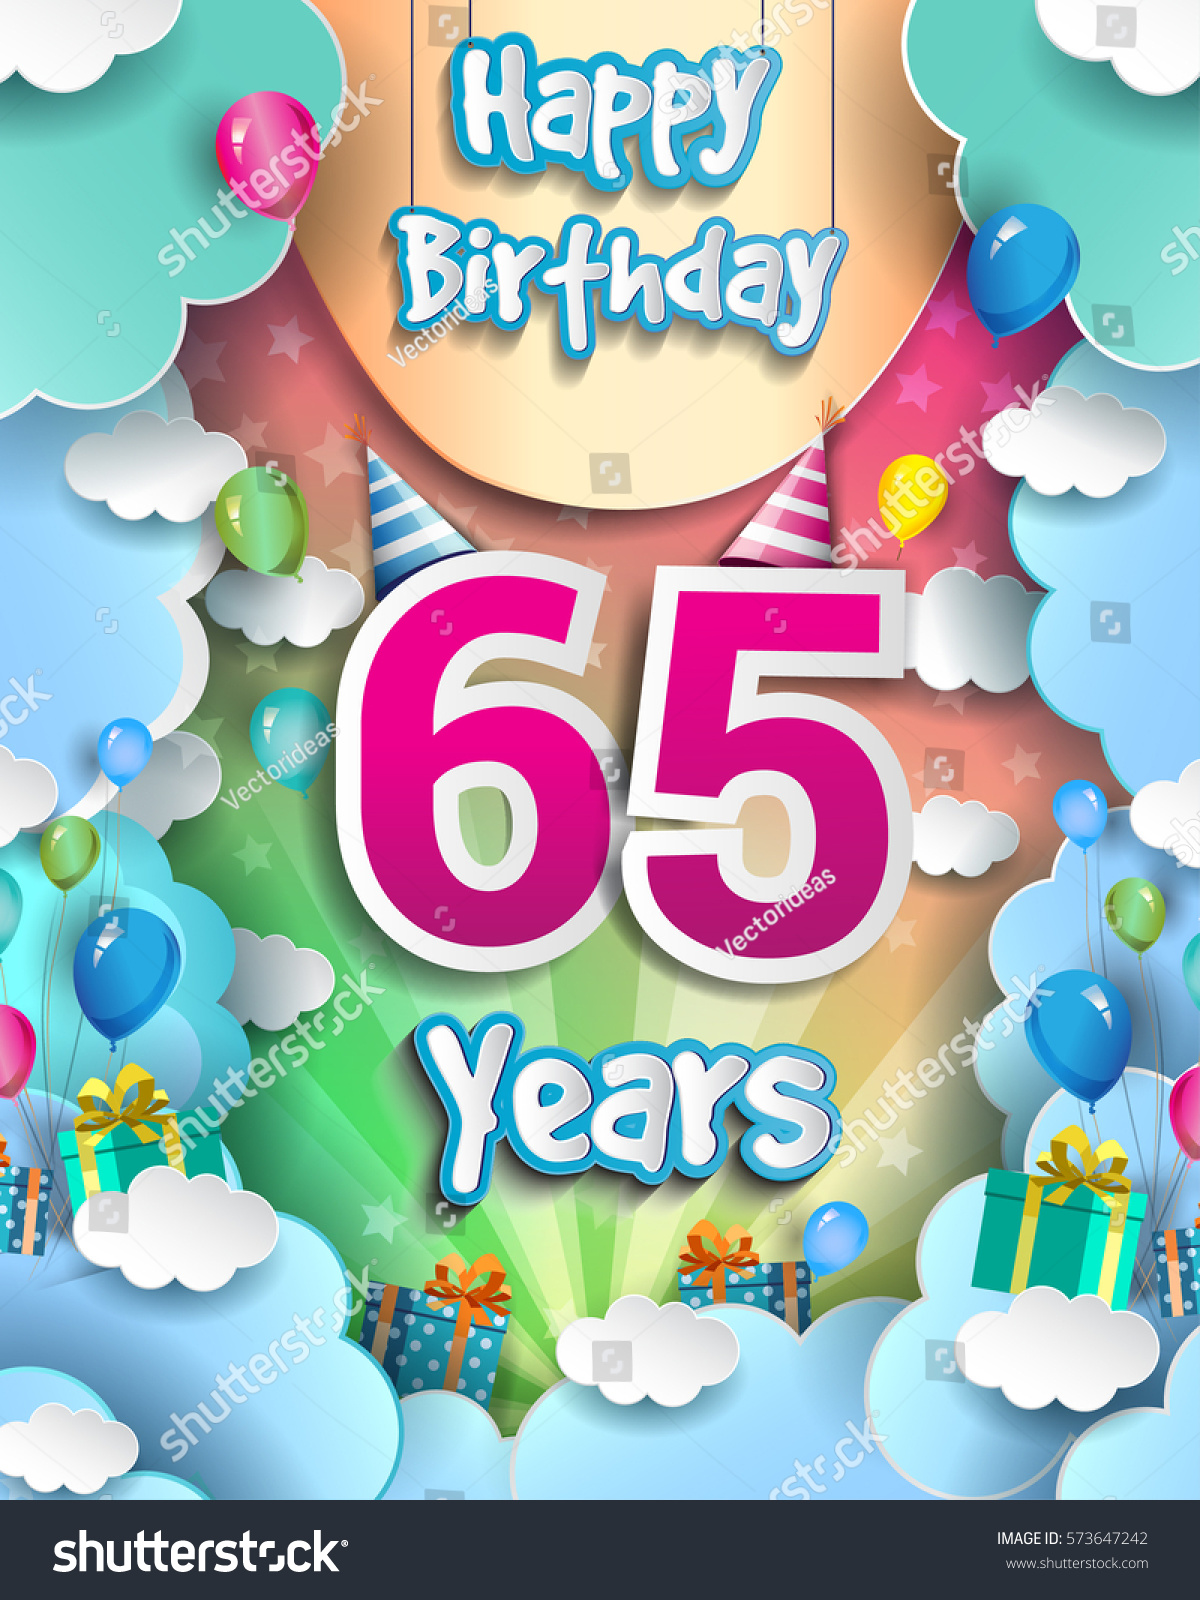 65 Years Birthday Celebration Design For Greeting Cards And Poster With Clouds Gift Box Balloons Template